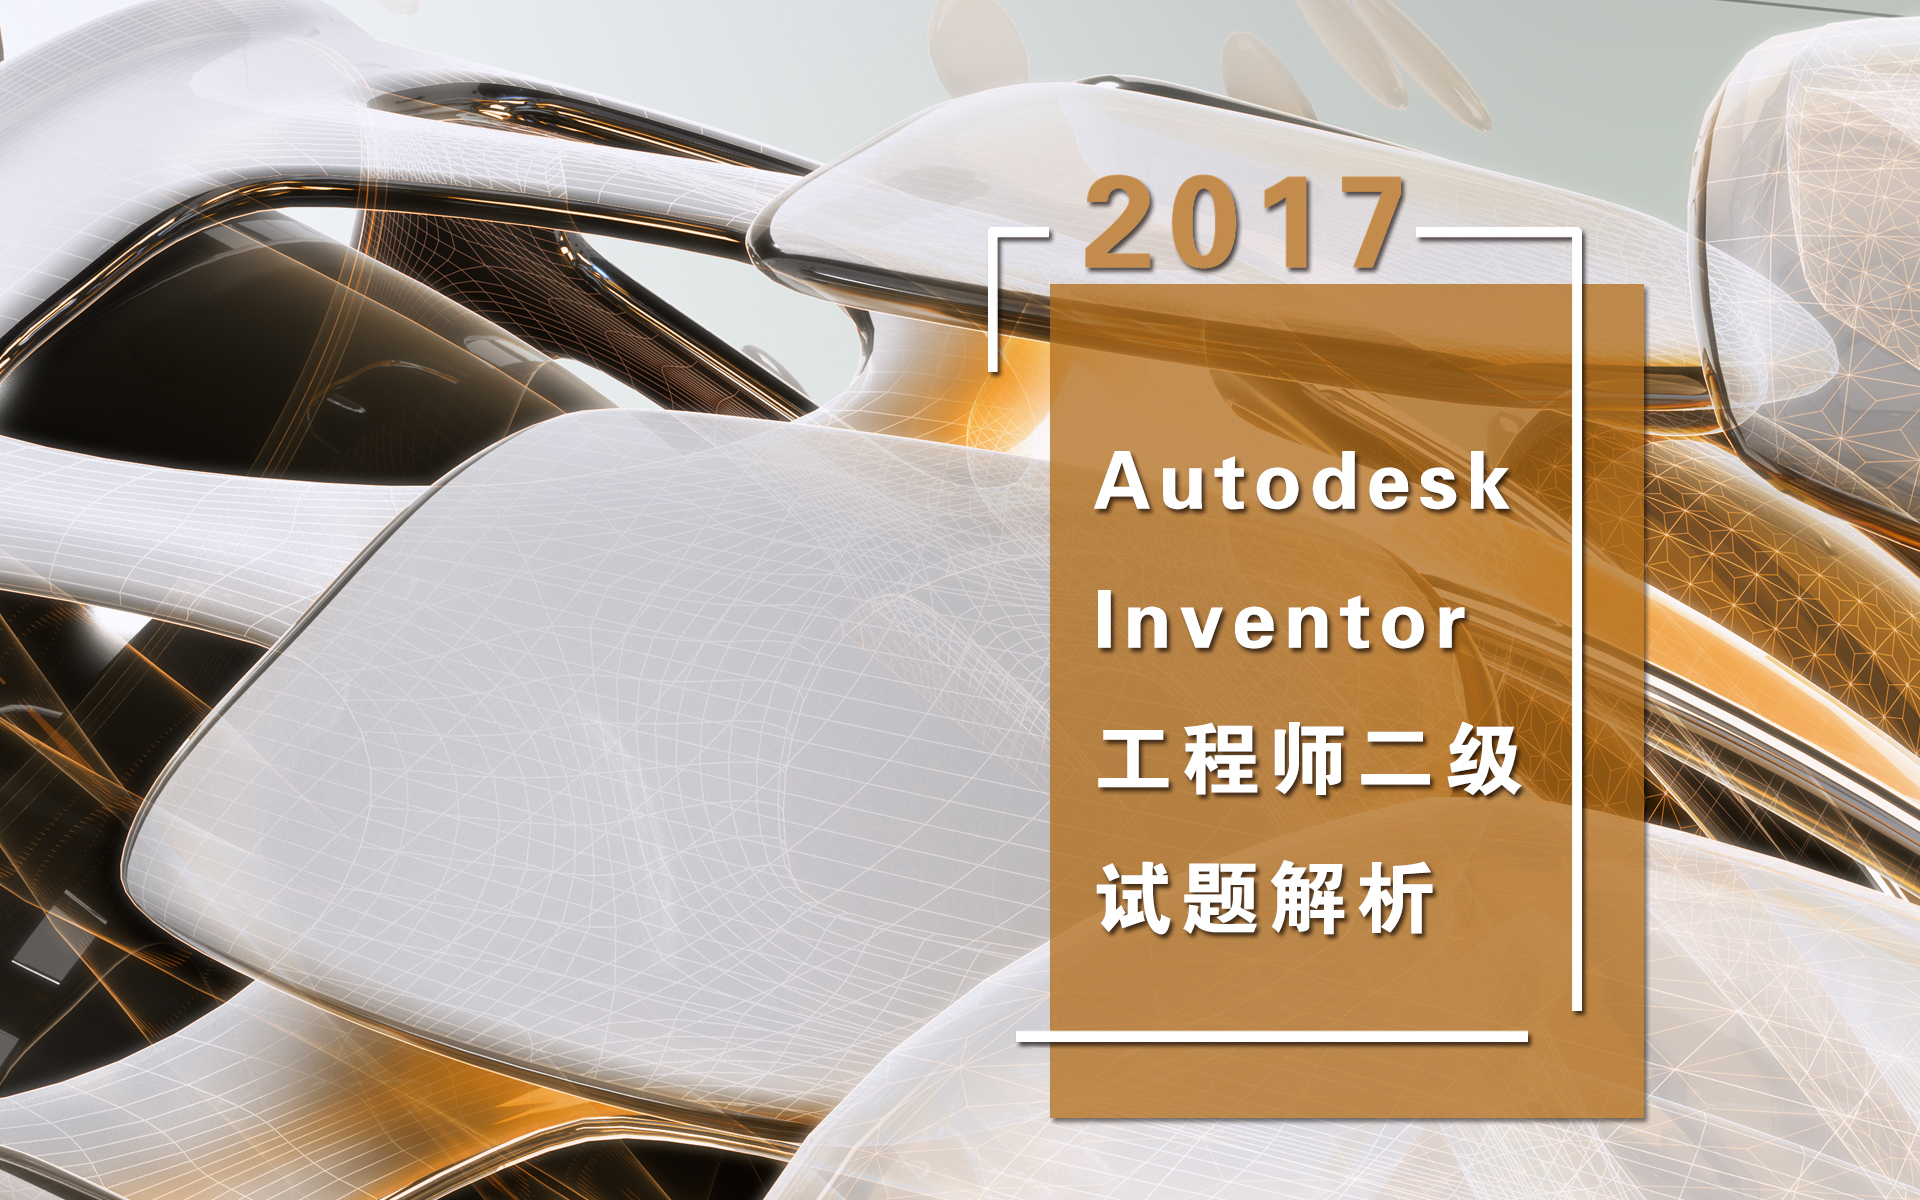 Autodesk Inventor 2017 工程师二级试题解析